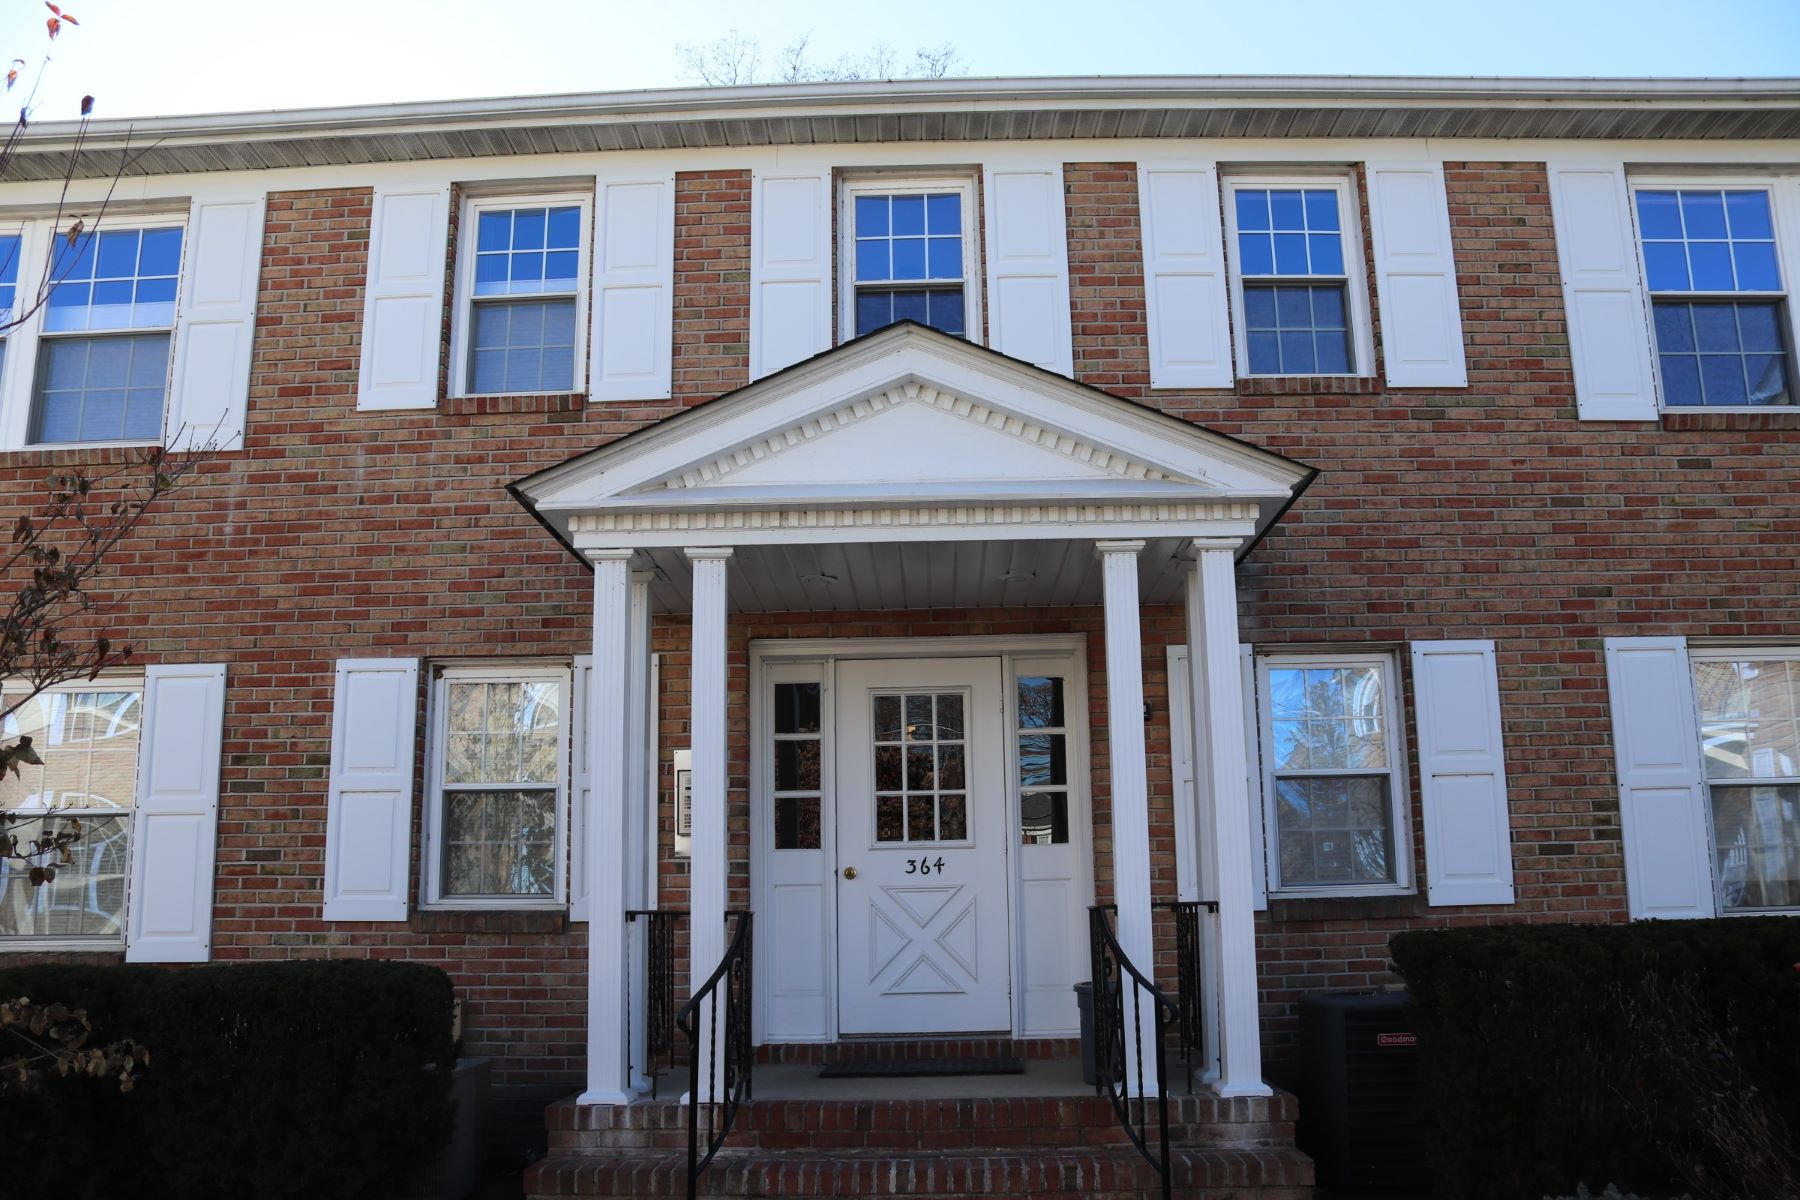 Property for Rent at Rare Availability! 364 East Ridgewood Avenue #3, Ridgewood, New Jersey 07450 United States